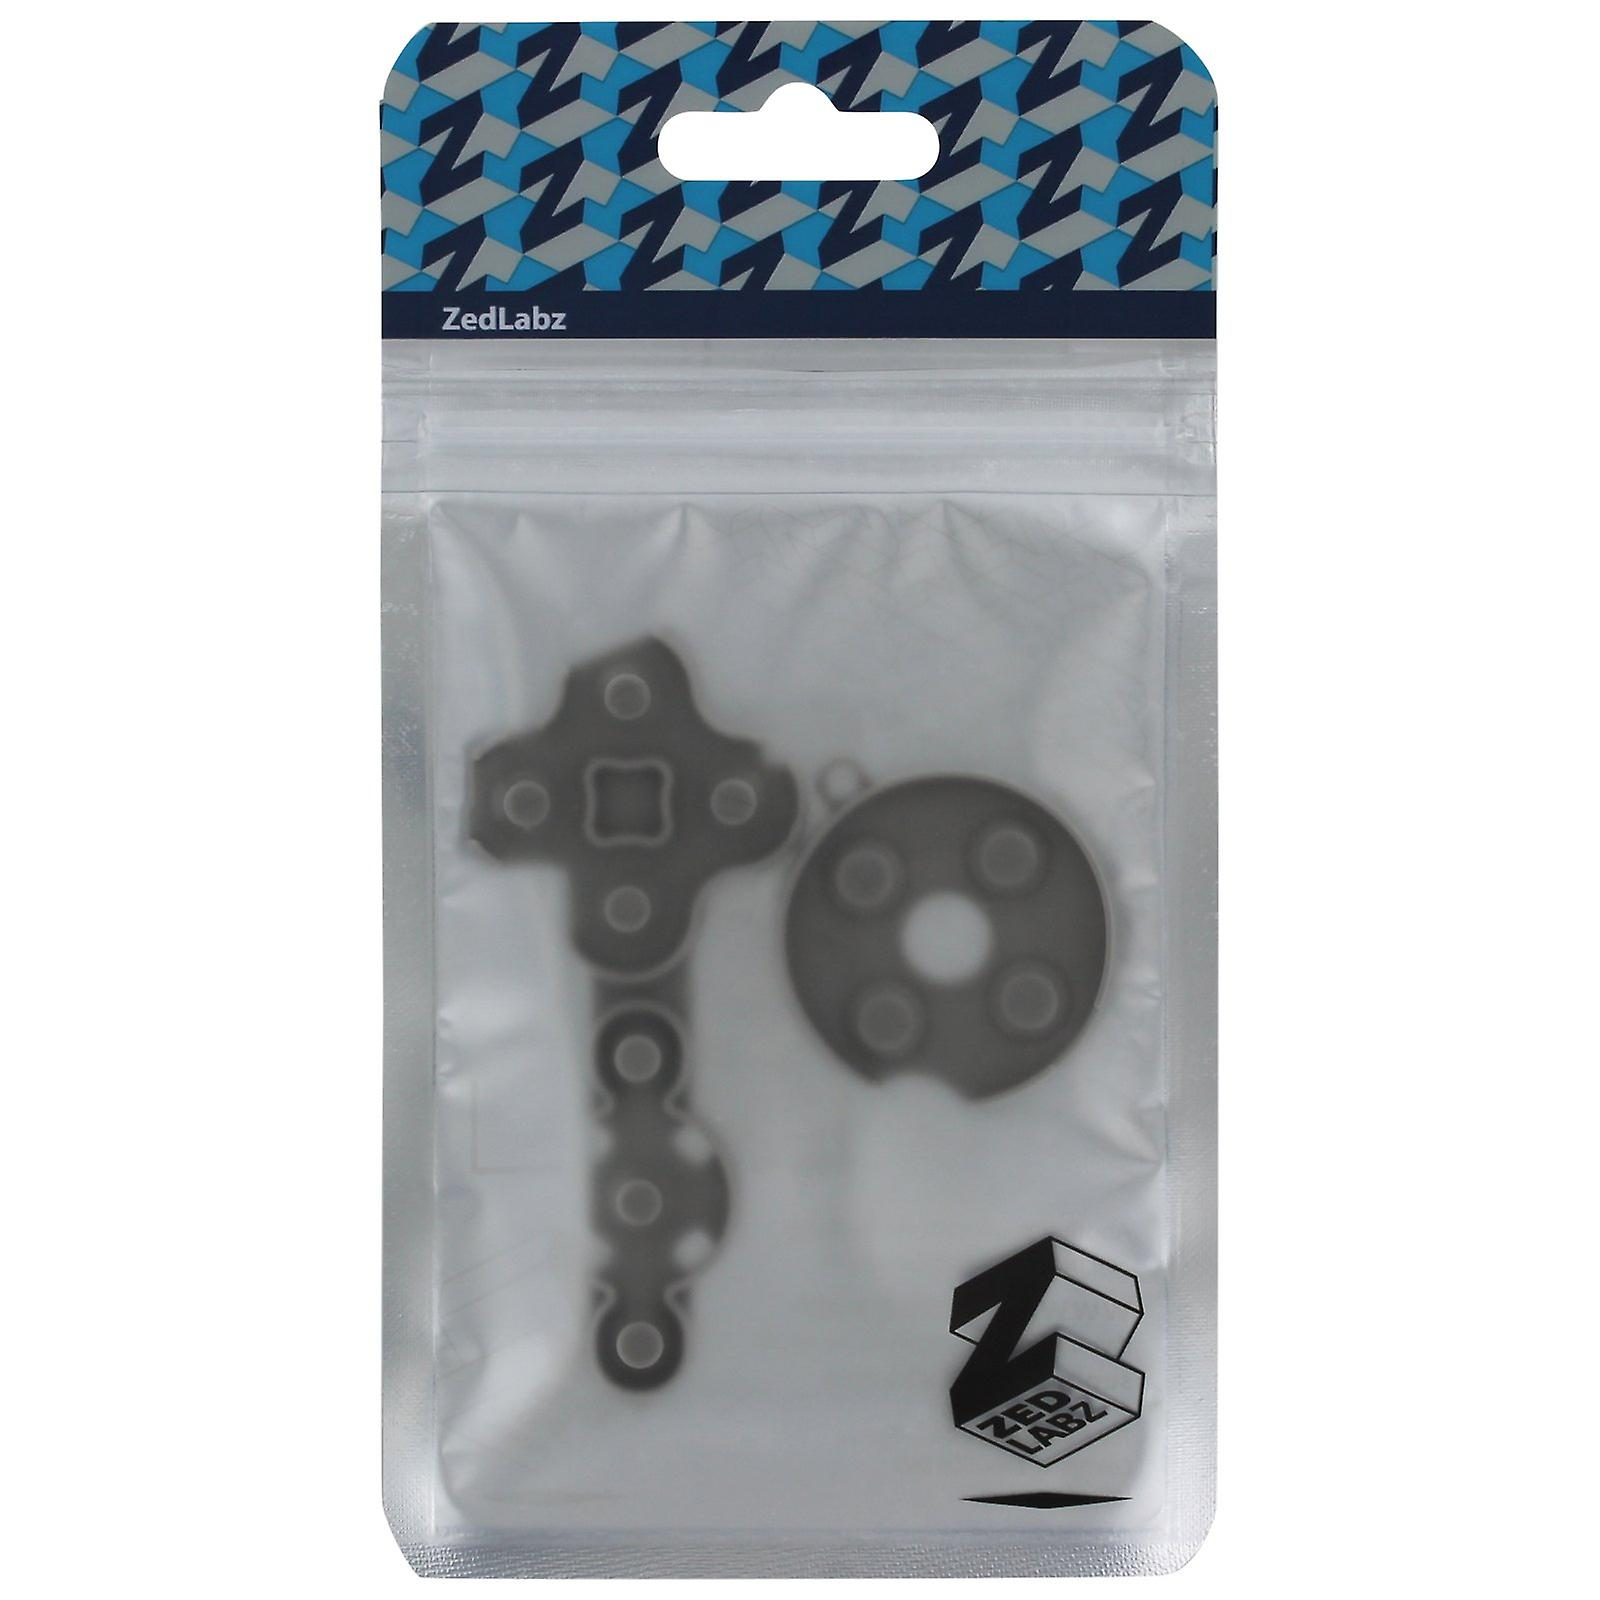 Conductive rubber pad button contacts gasket kit for xbox 360 controllers